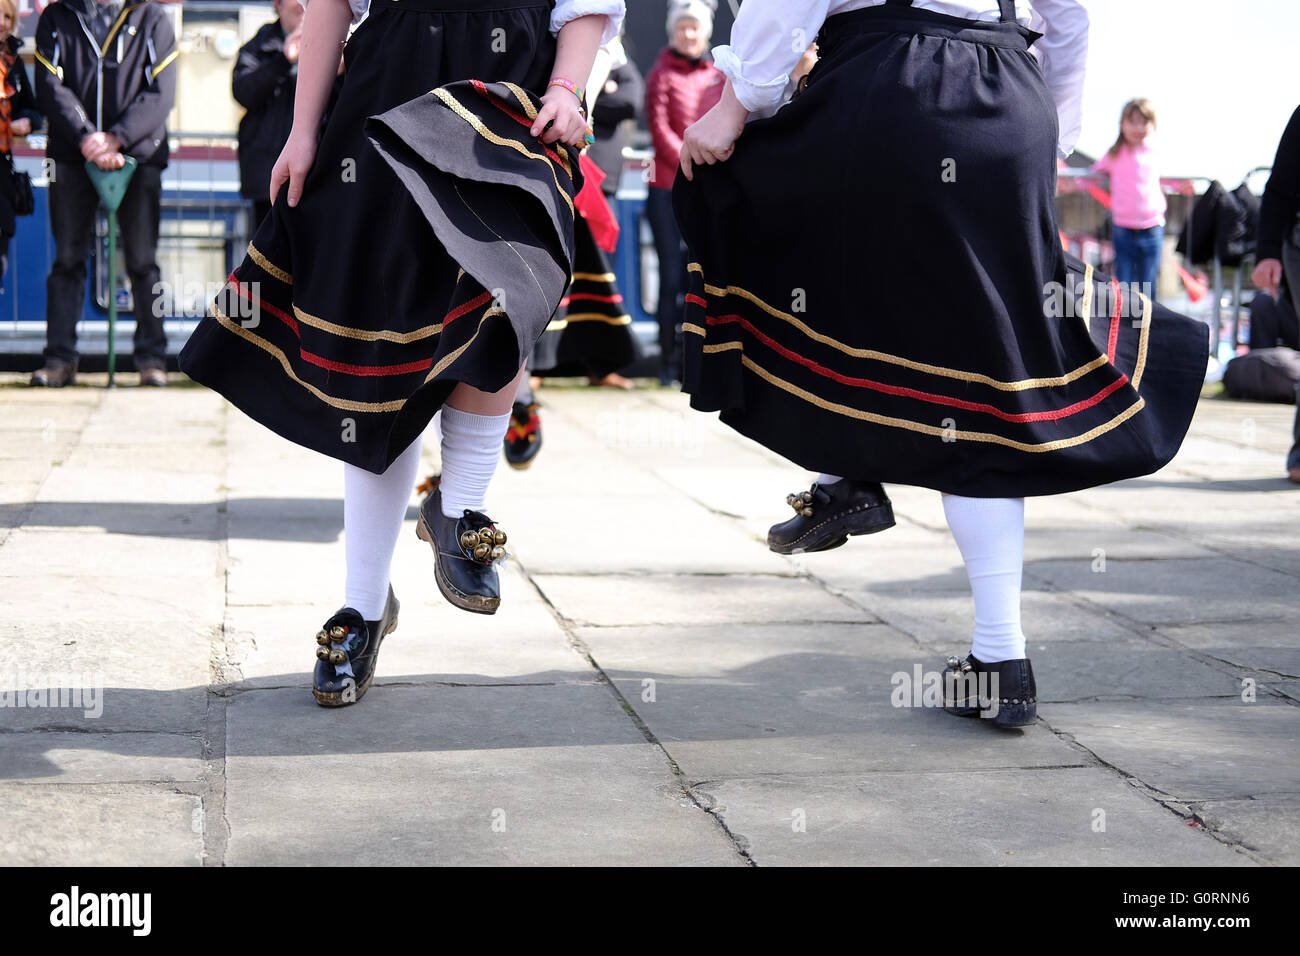 Feet of a morris dancing troop showing clogs and flowing dresses on a Yorkshire stone flagged pavement. - Stock Image